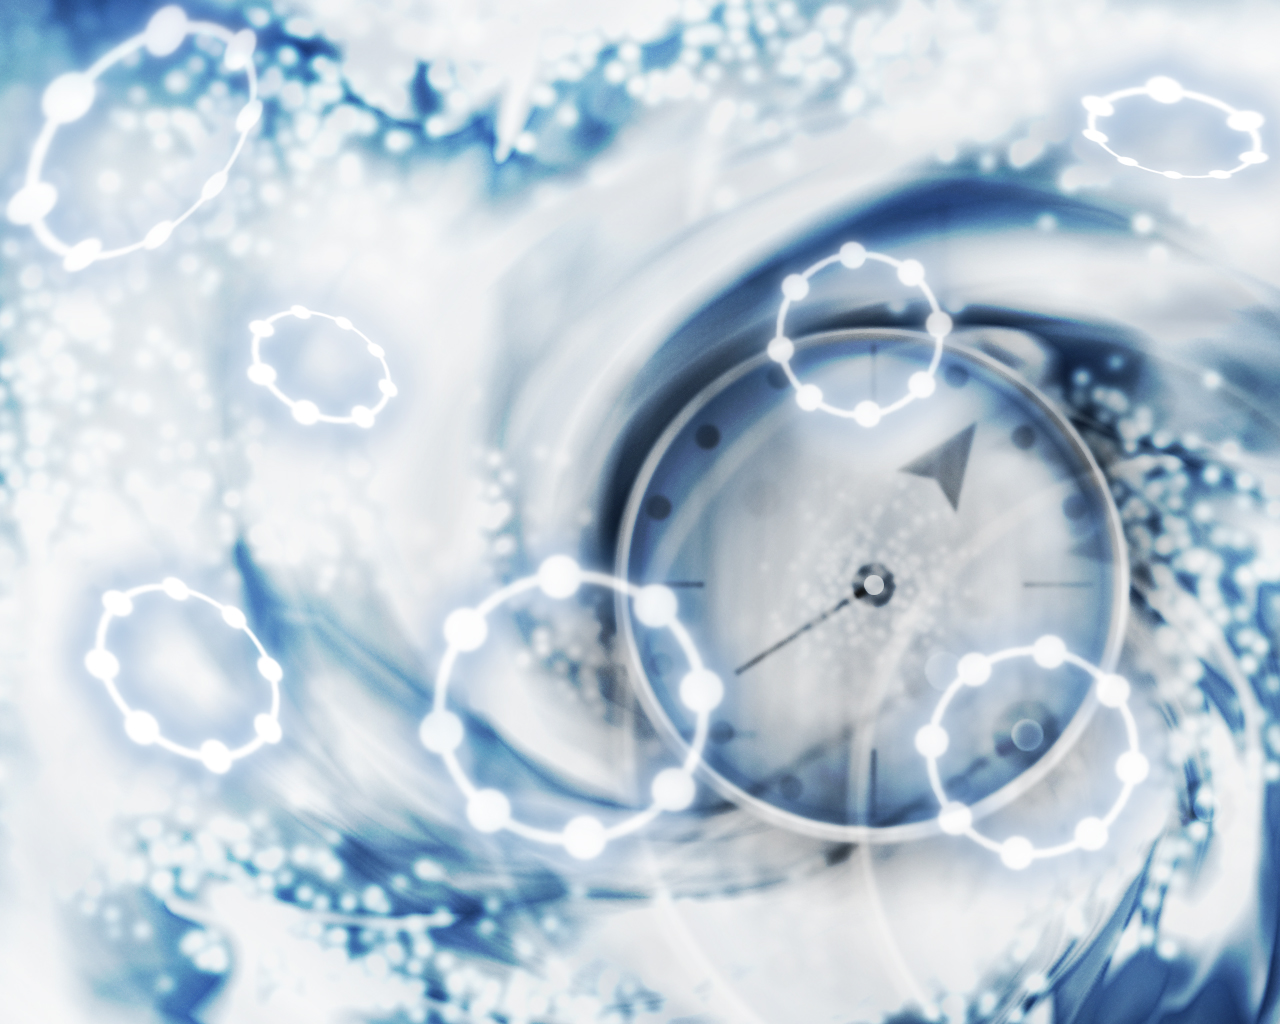 Stylized representation of time featuring a watch face surrounded by white and blue swirls; the image is overlaid with glowing circular shapes.